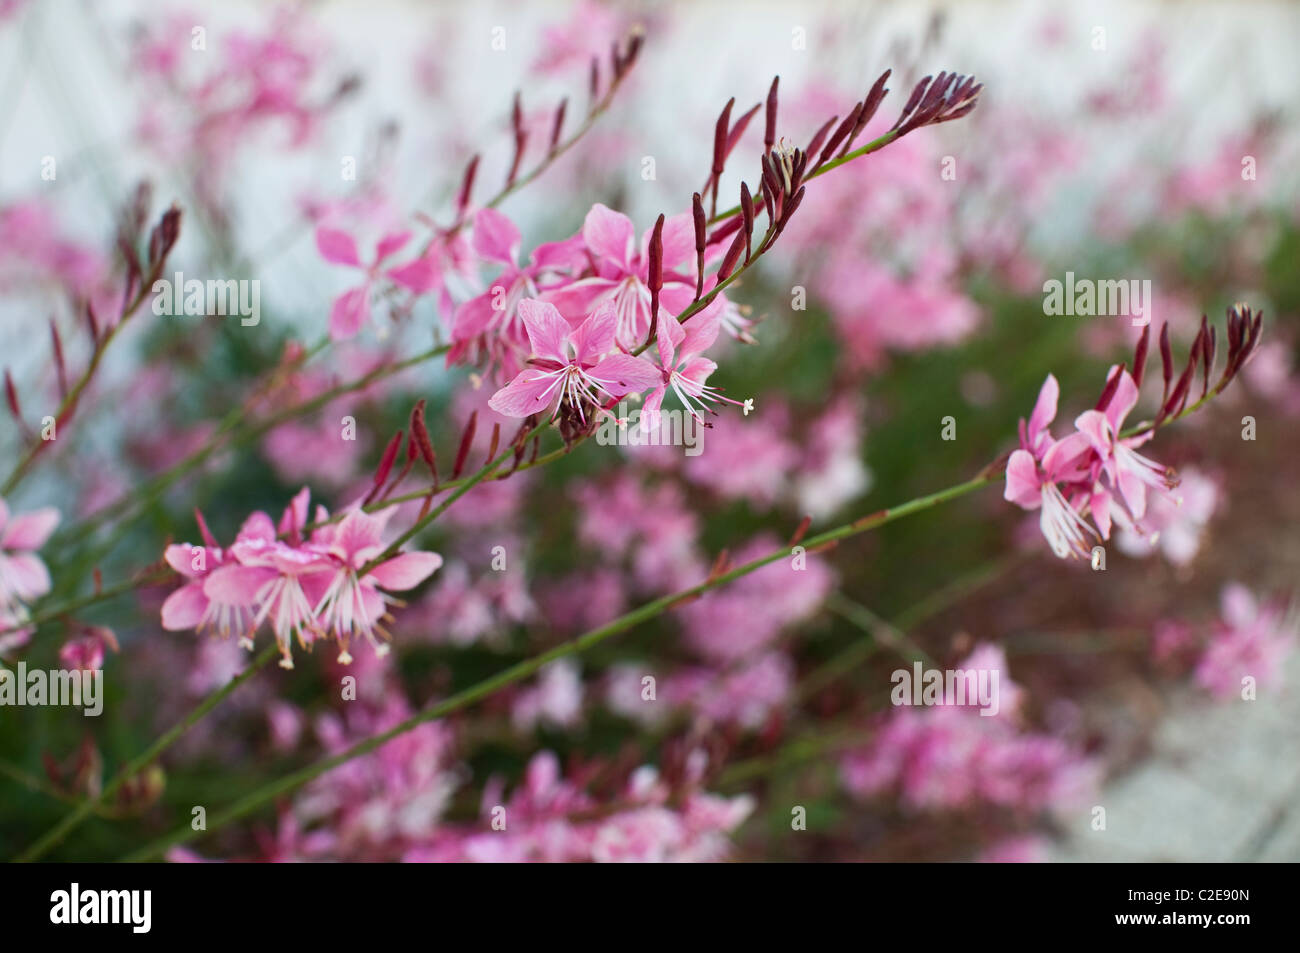 Pink flowers used in landscaping at Rosemary Beach, Florida. - Stock Image